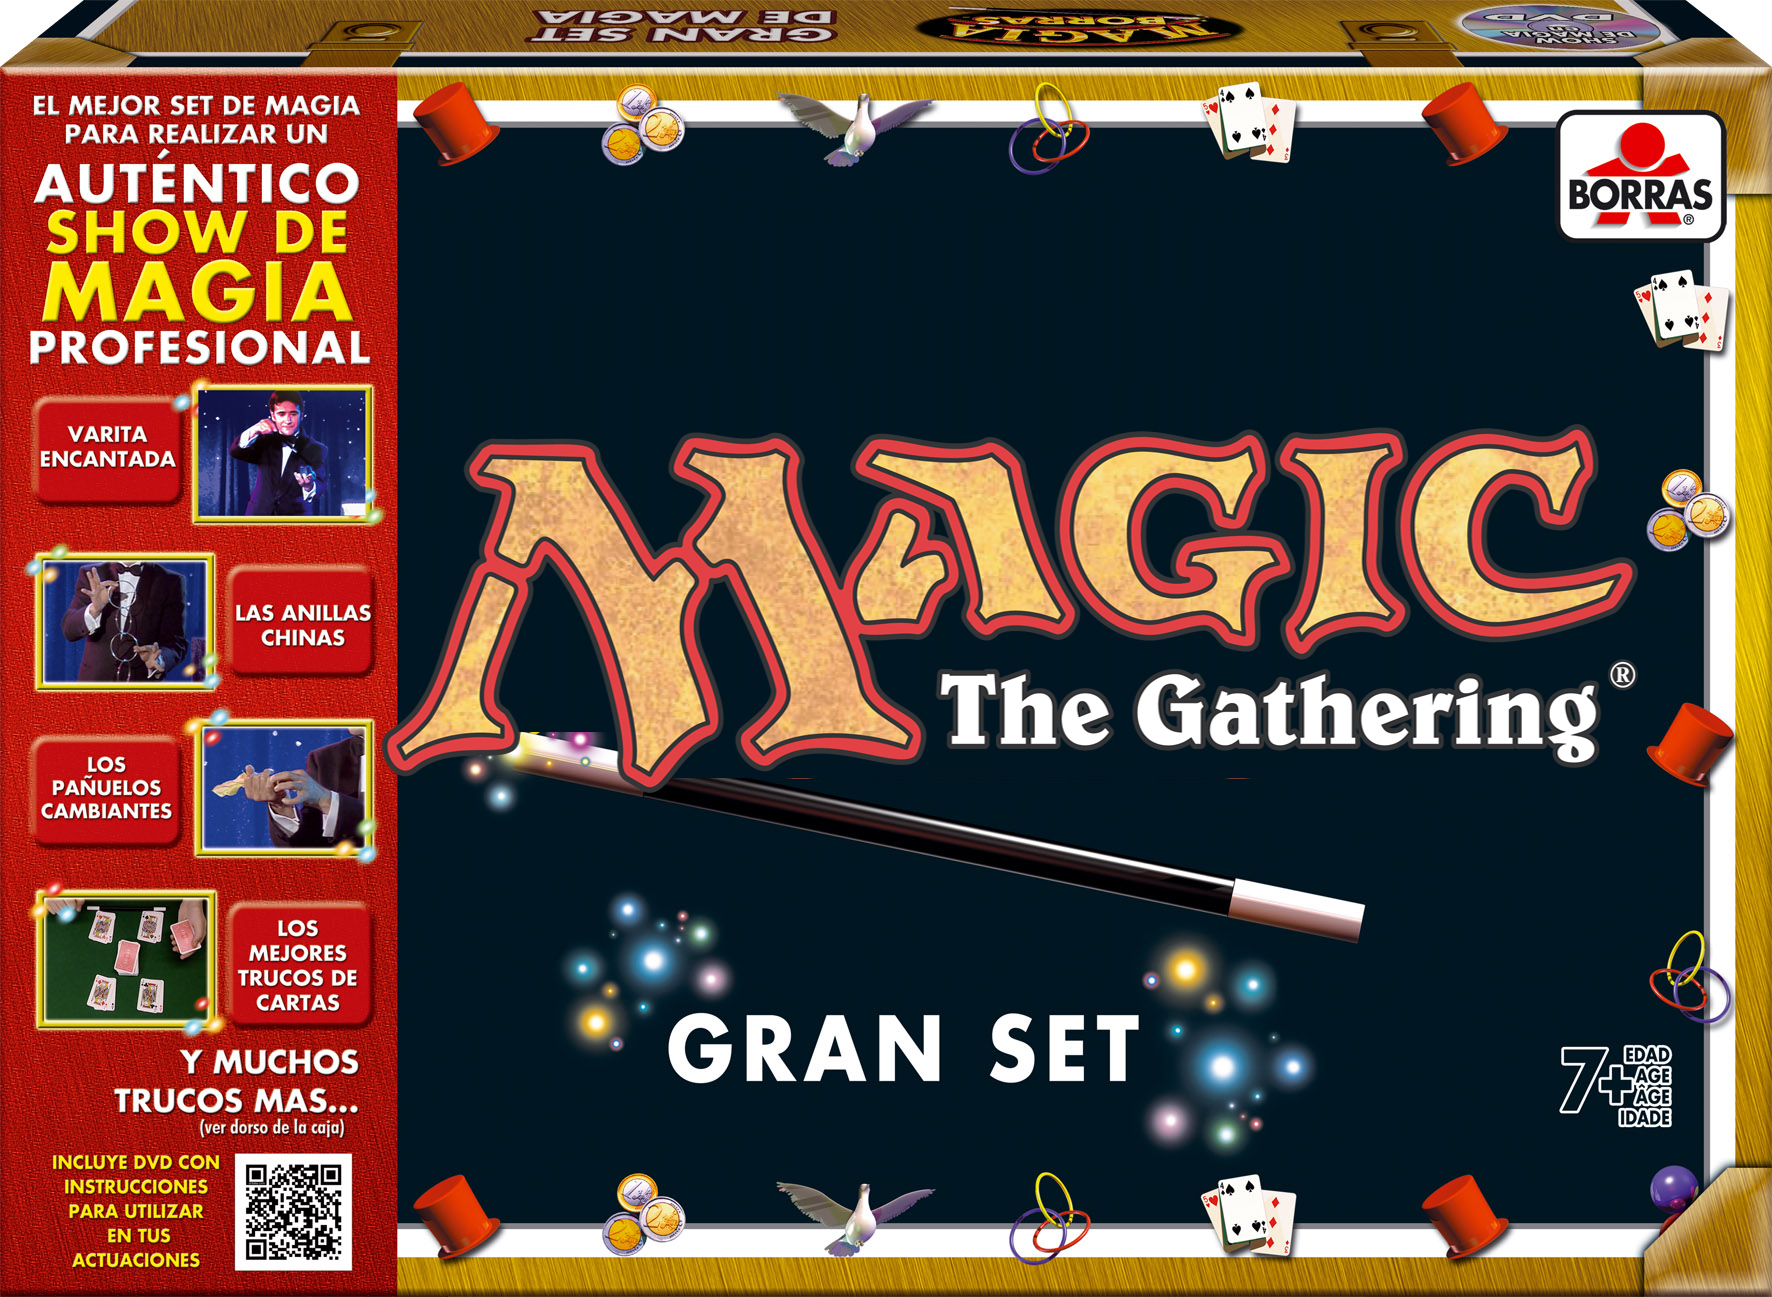 Magia-Borras-Gran-Set